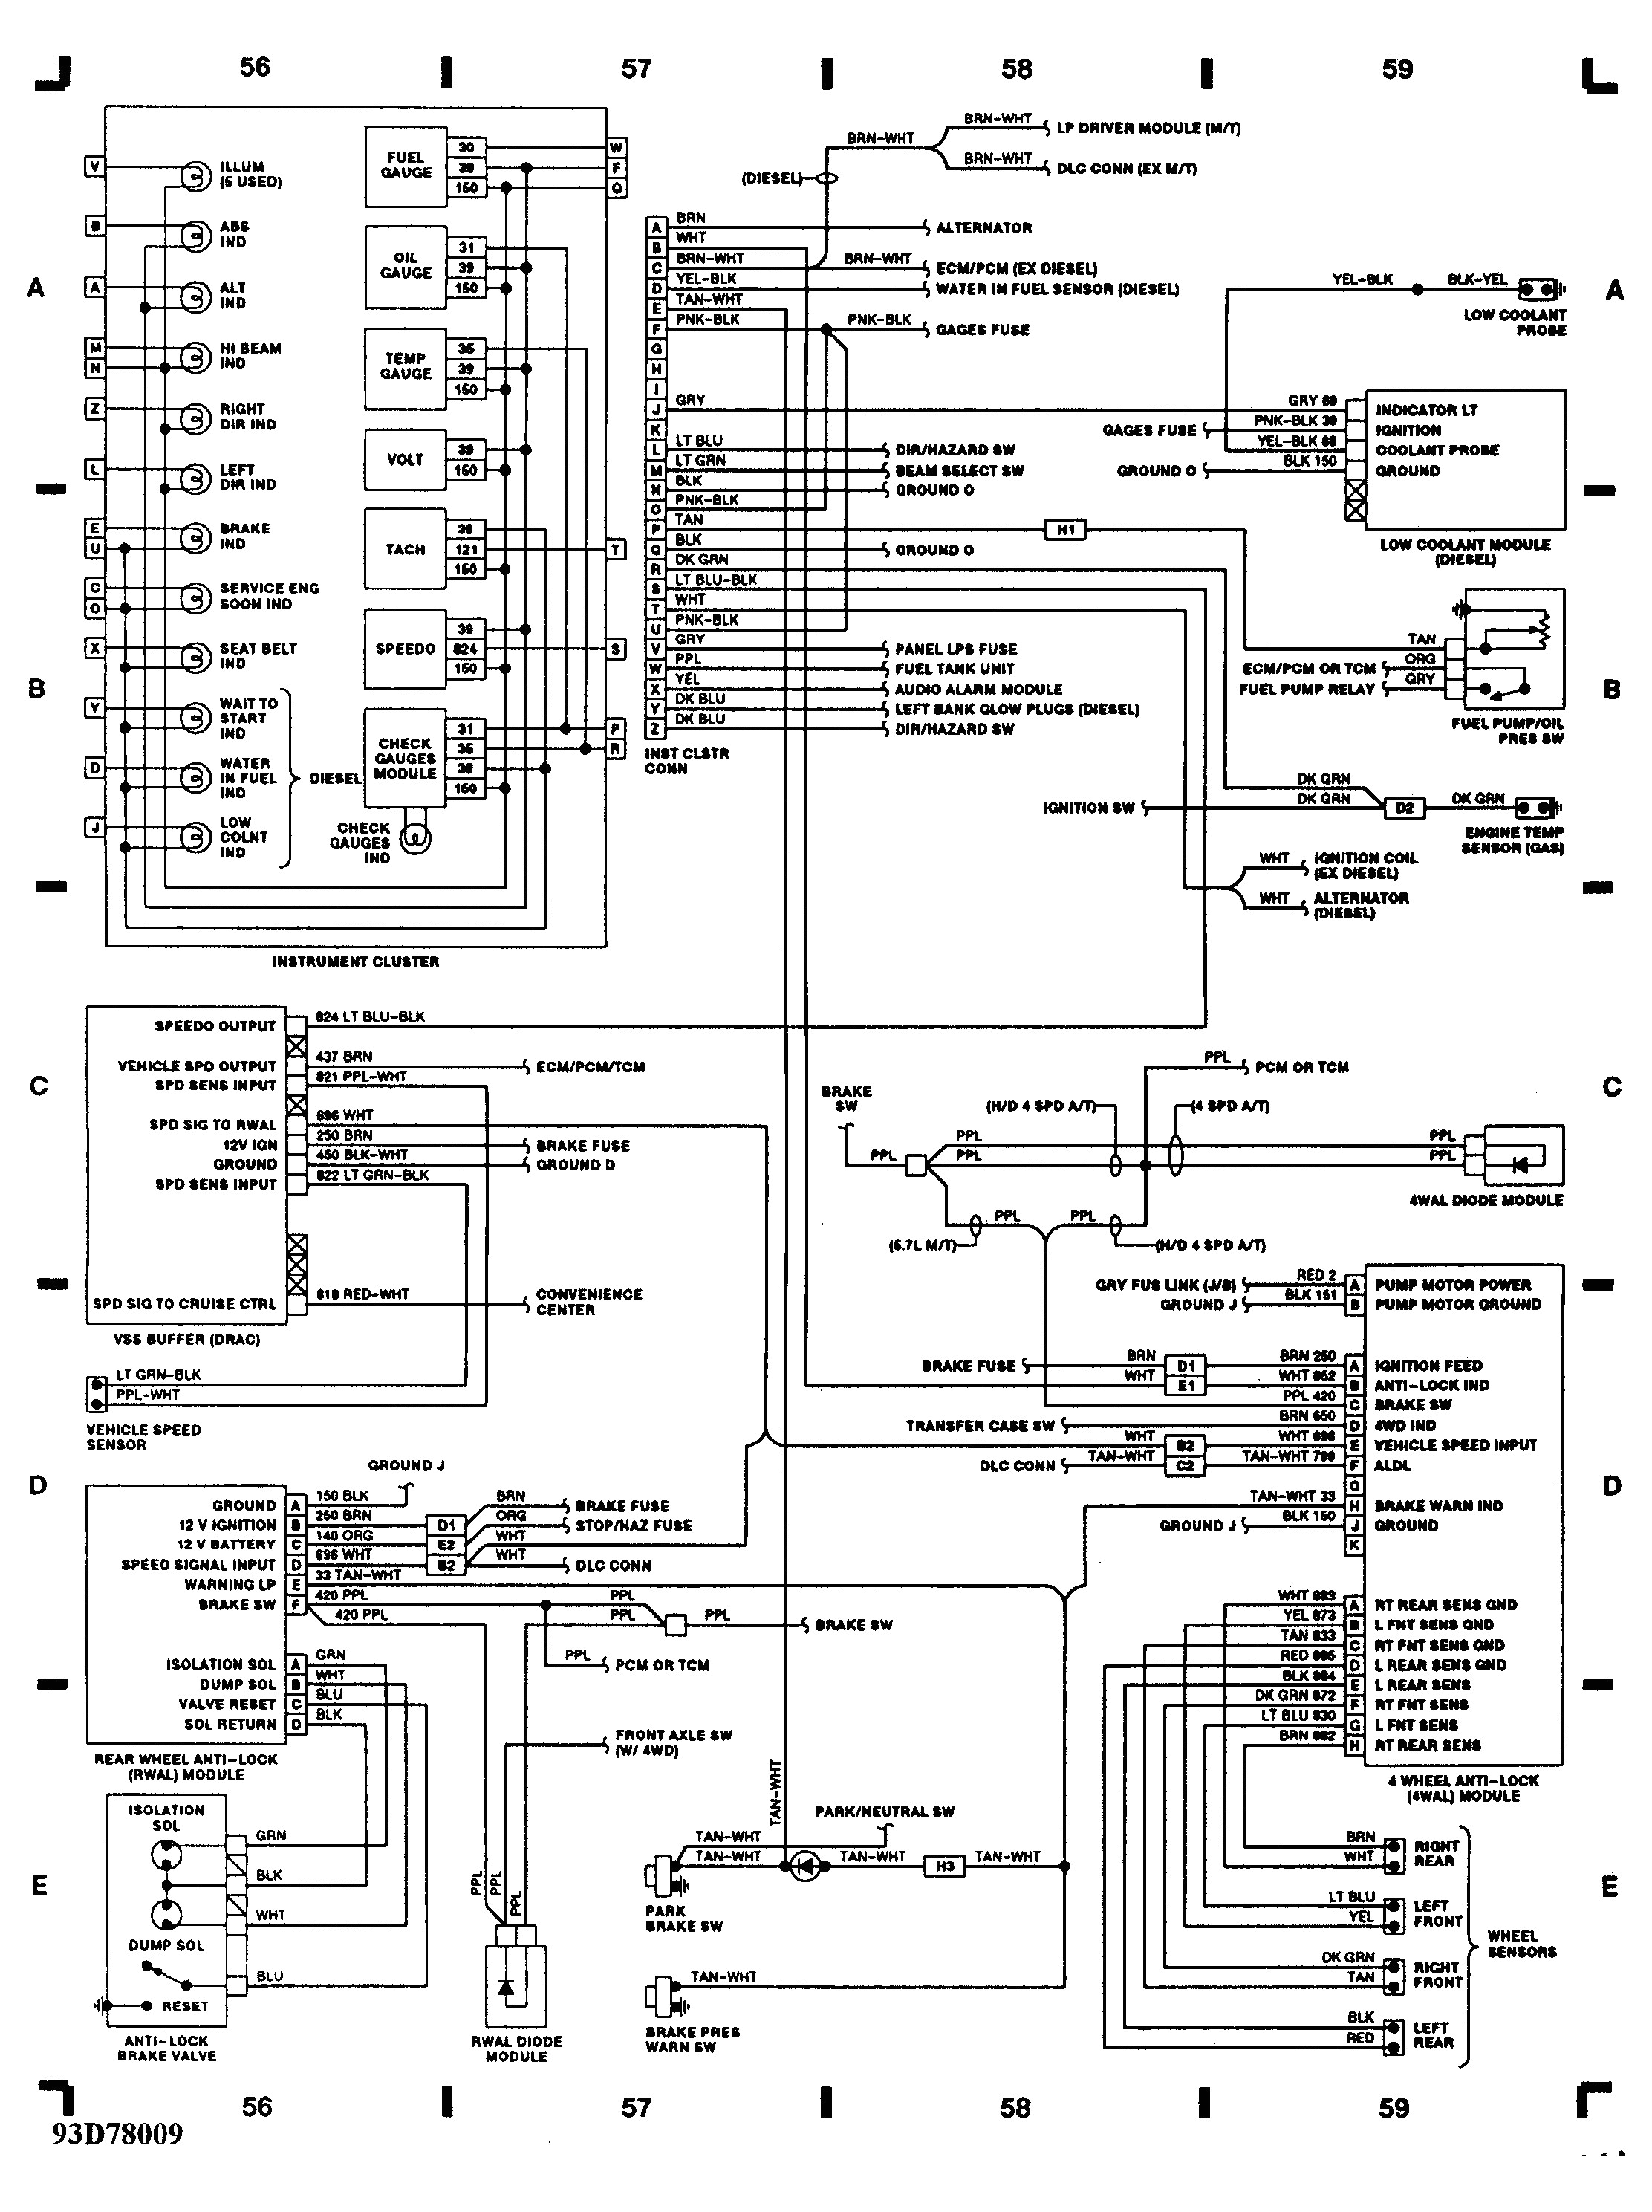 gm ls1 engine diagram wiring diagram post ls1 injector wire harness diagram furthermore ls3 map sensor wiring in